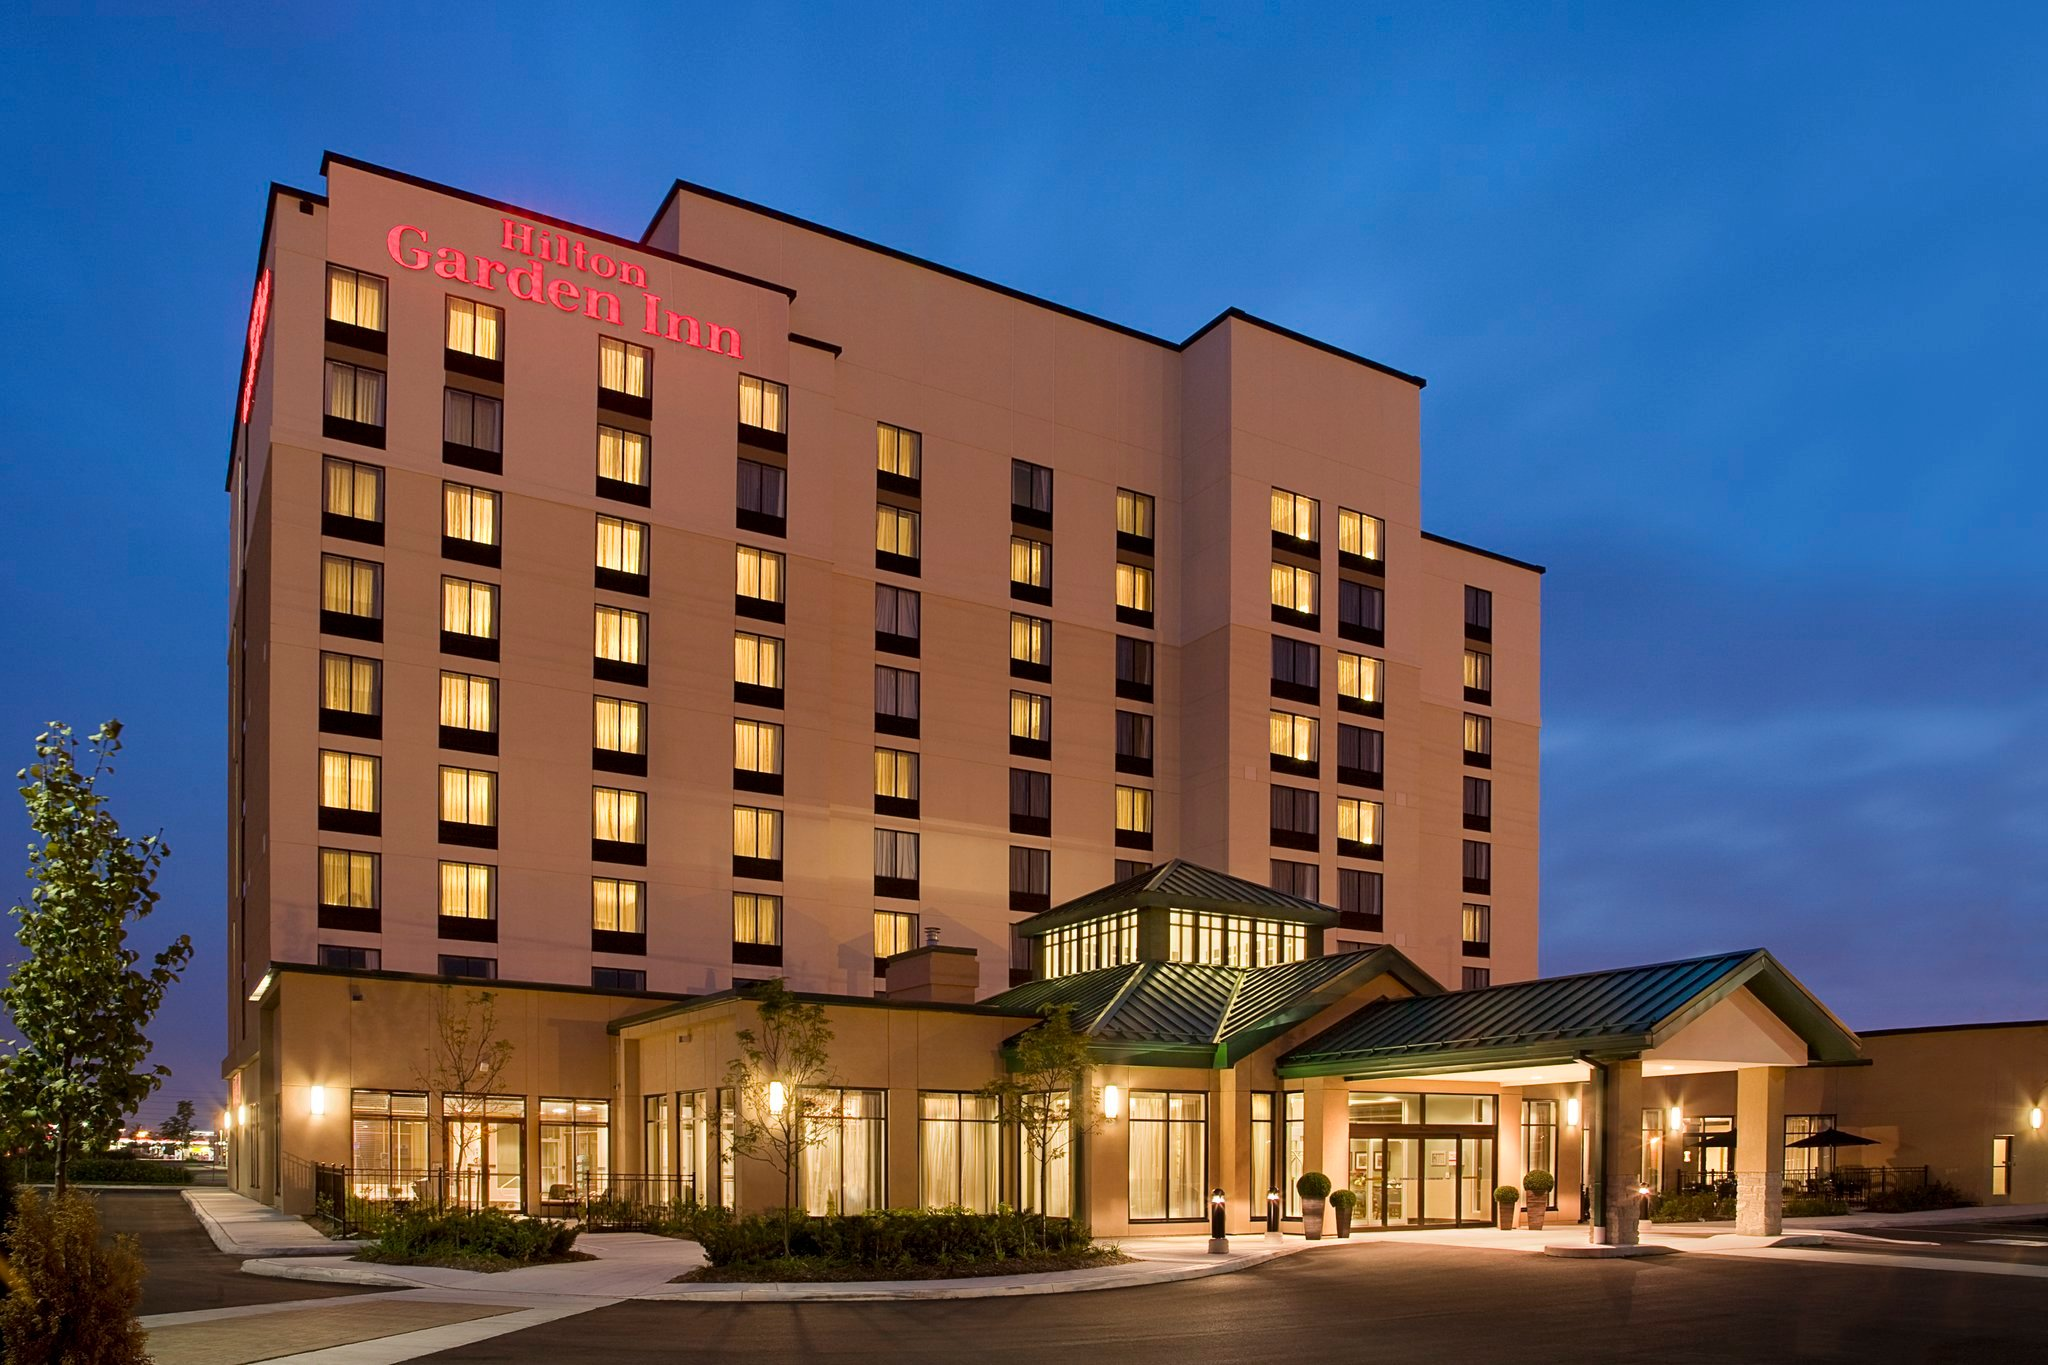 Hilton Garden Inn Kitchener Hilton Garden Inn Toronto Airport West Mississauga Hotel Reviews